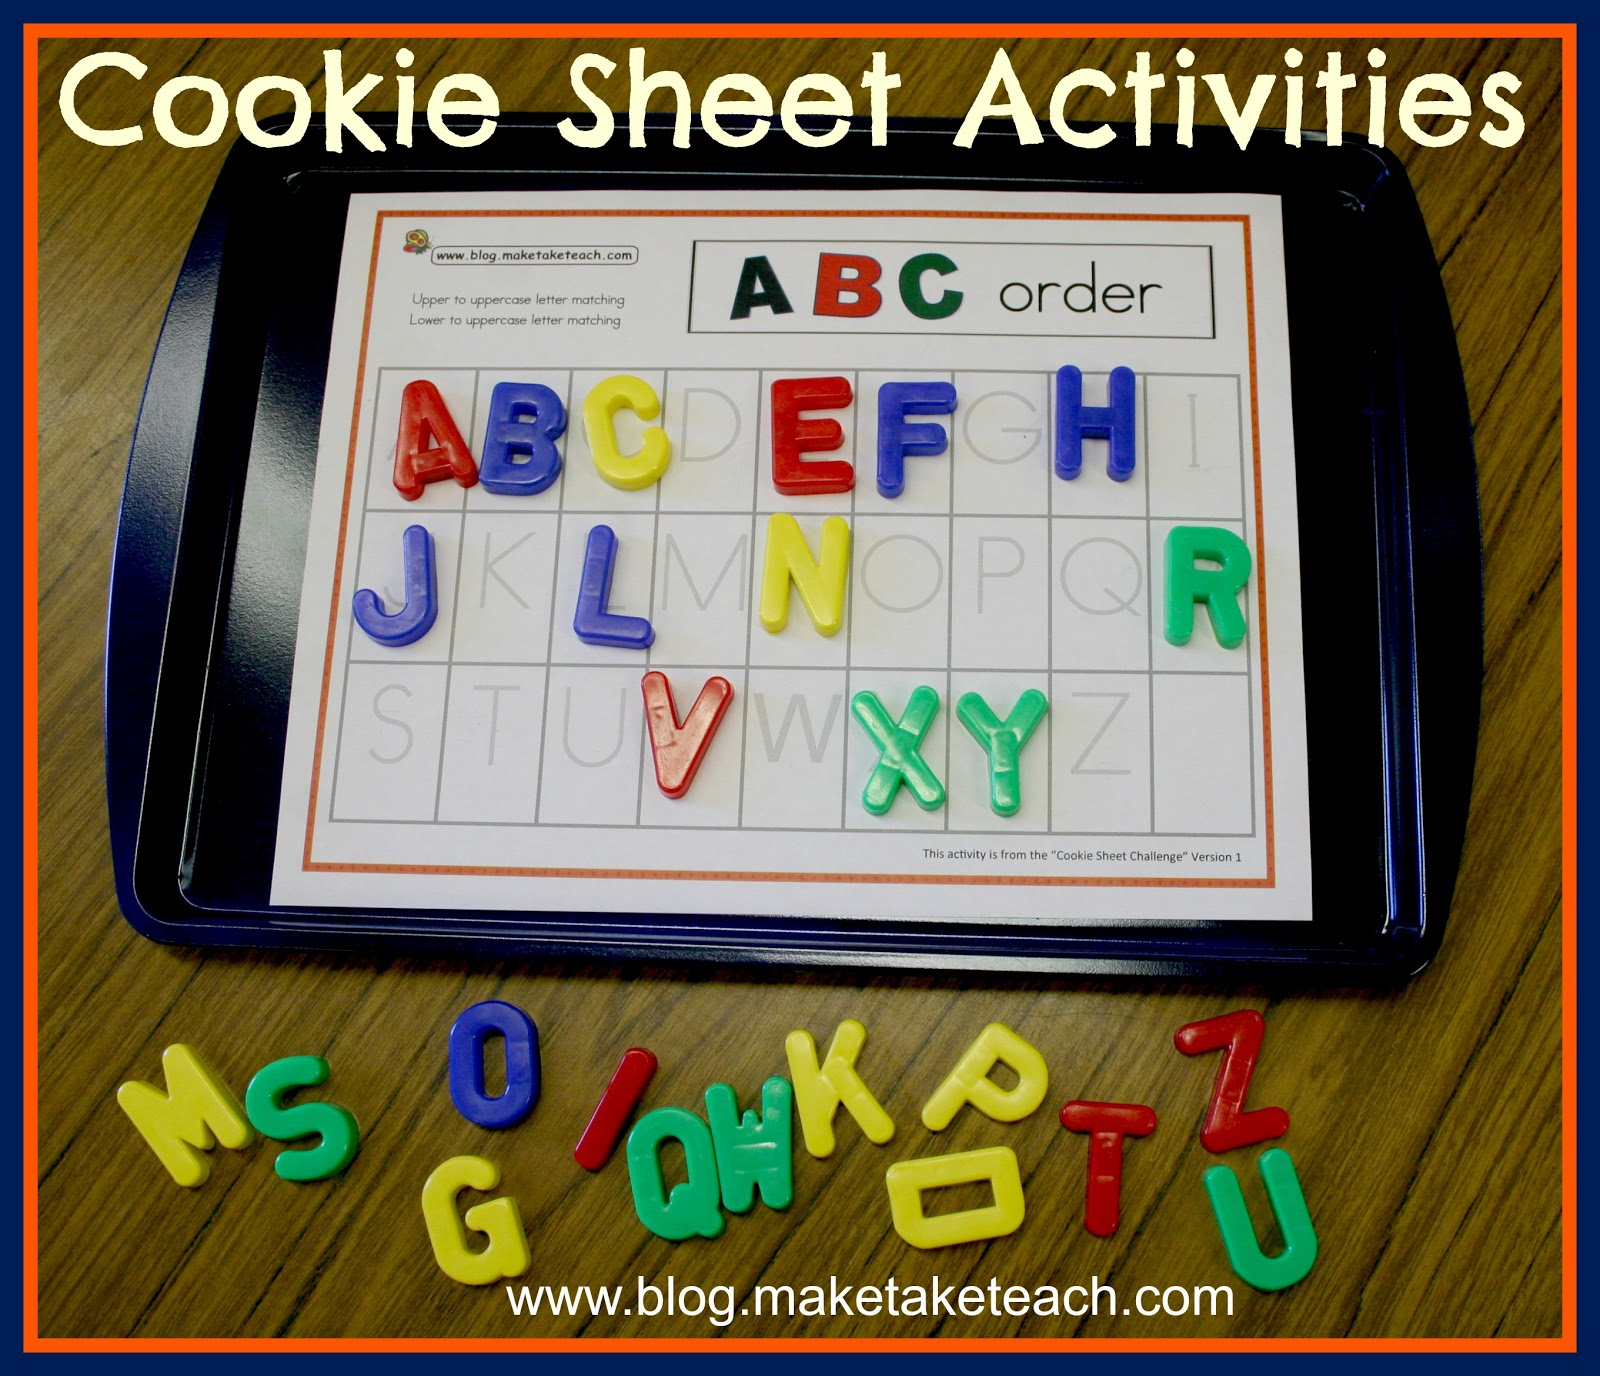 Cookie Sheet Activities Alphabetic Order